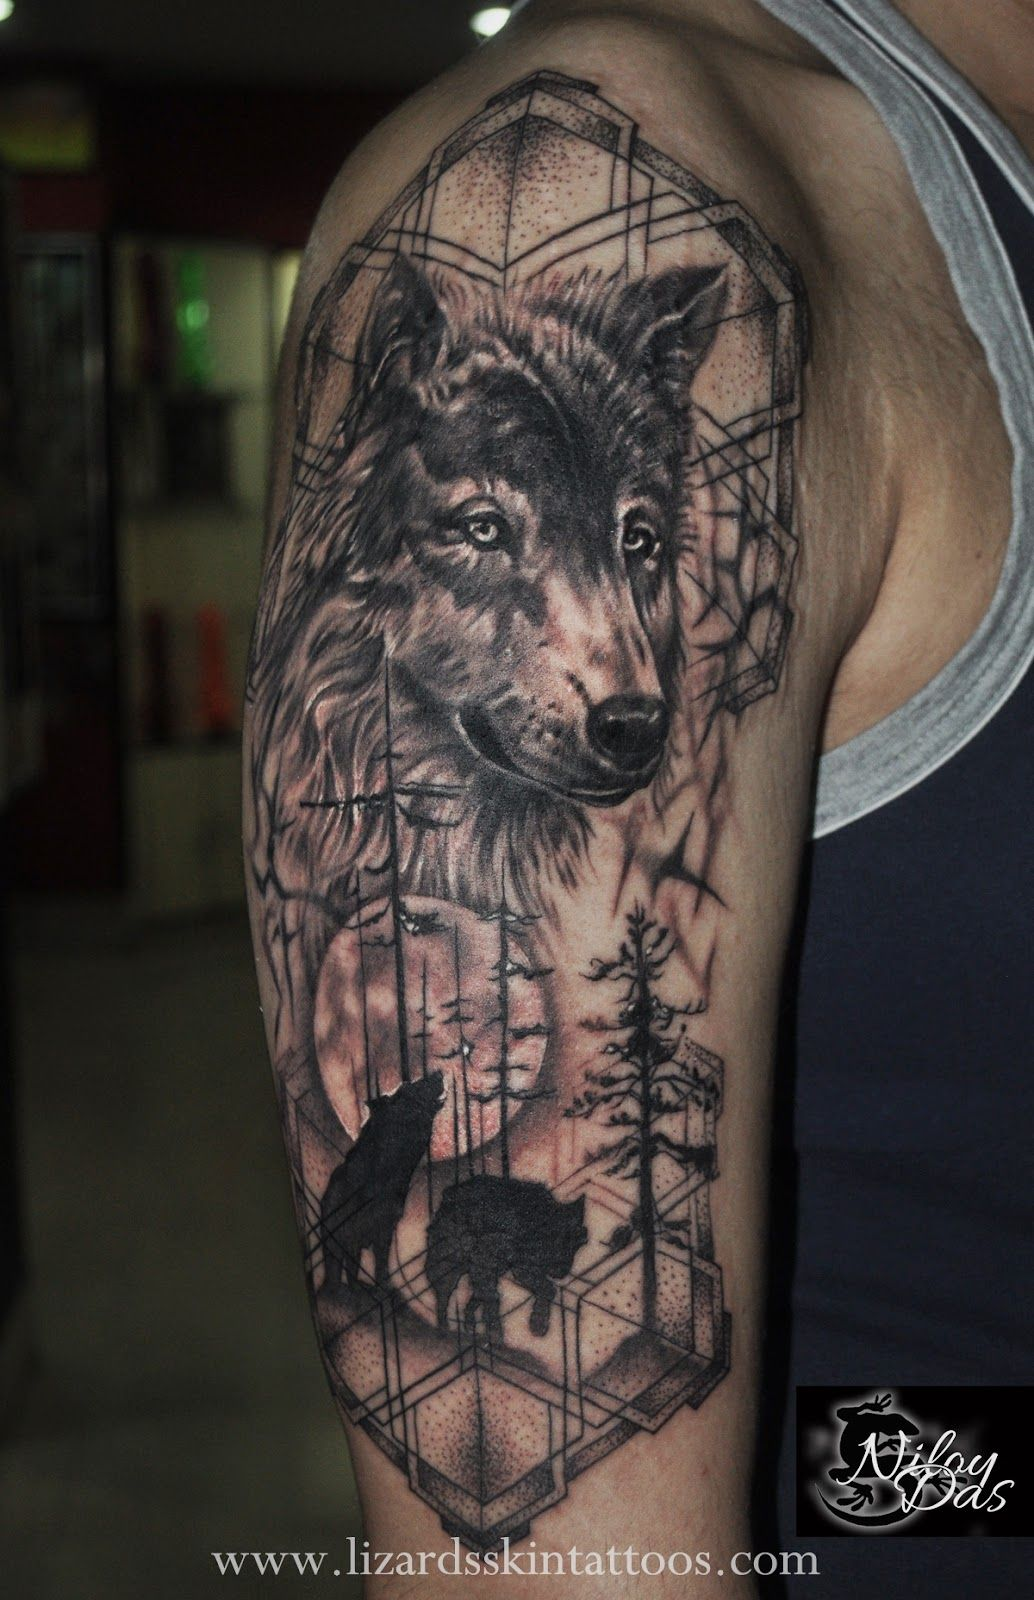 badass wolf tattoo tattoo. Black Bedroom Furniture Sets. Home Design Ideas